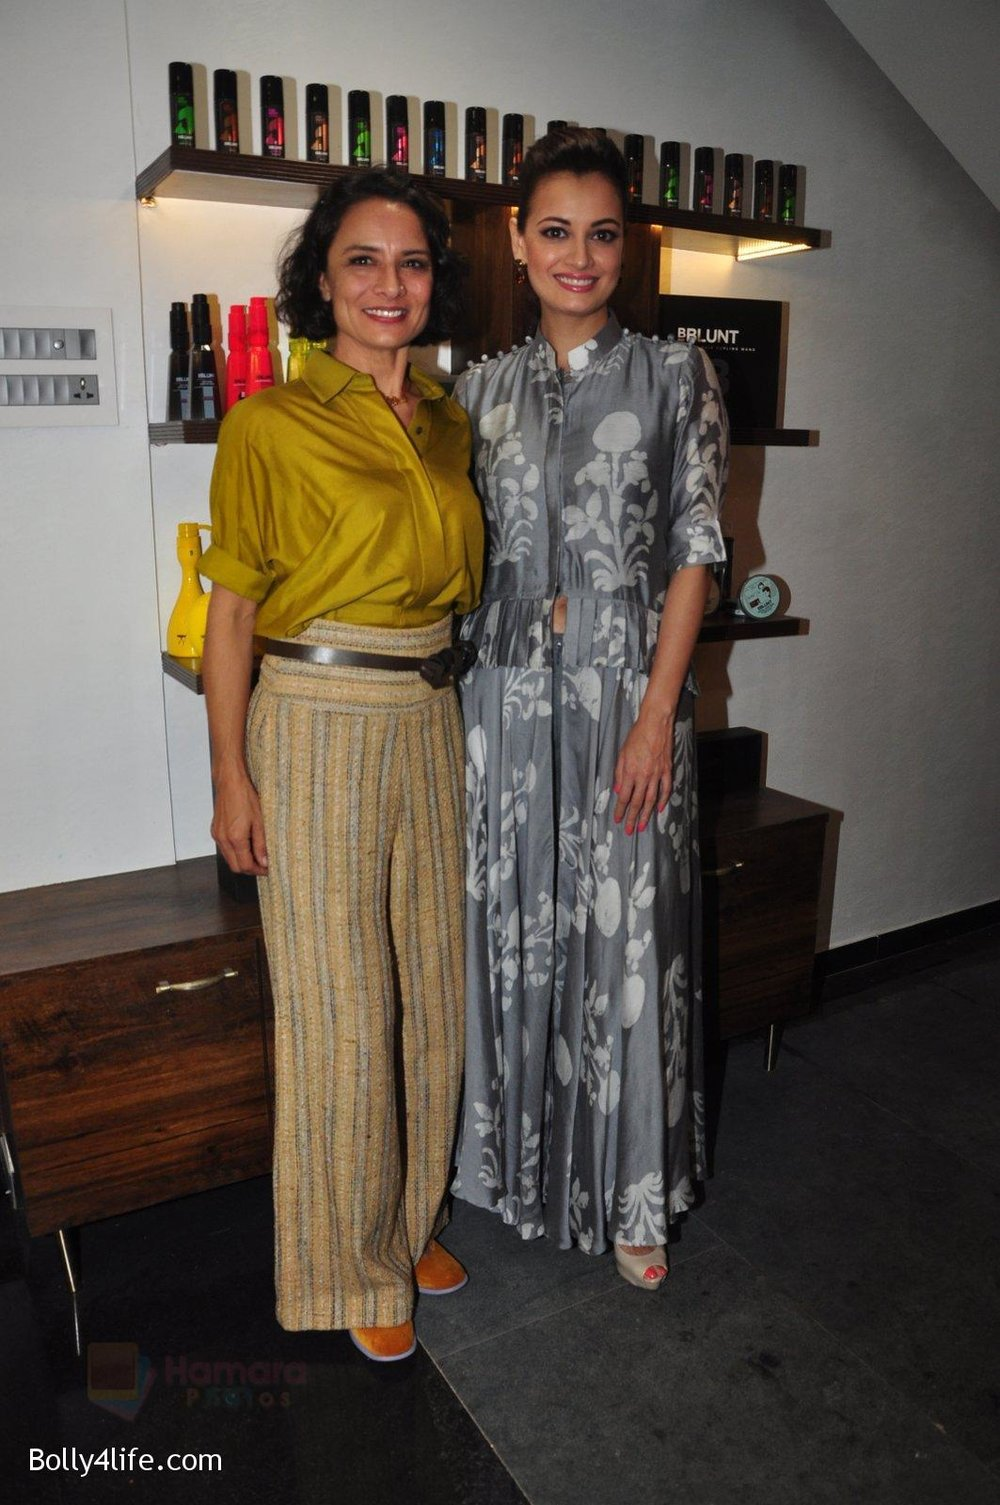 Dia-Mirza-Adhuna-Akhtar-launches-Bblunt-in-Malad-on-14th-Sept-2016-42.jpg